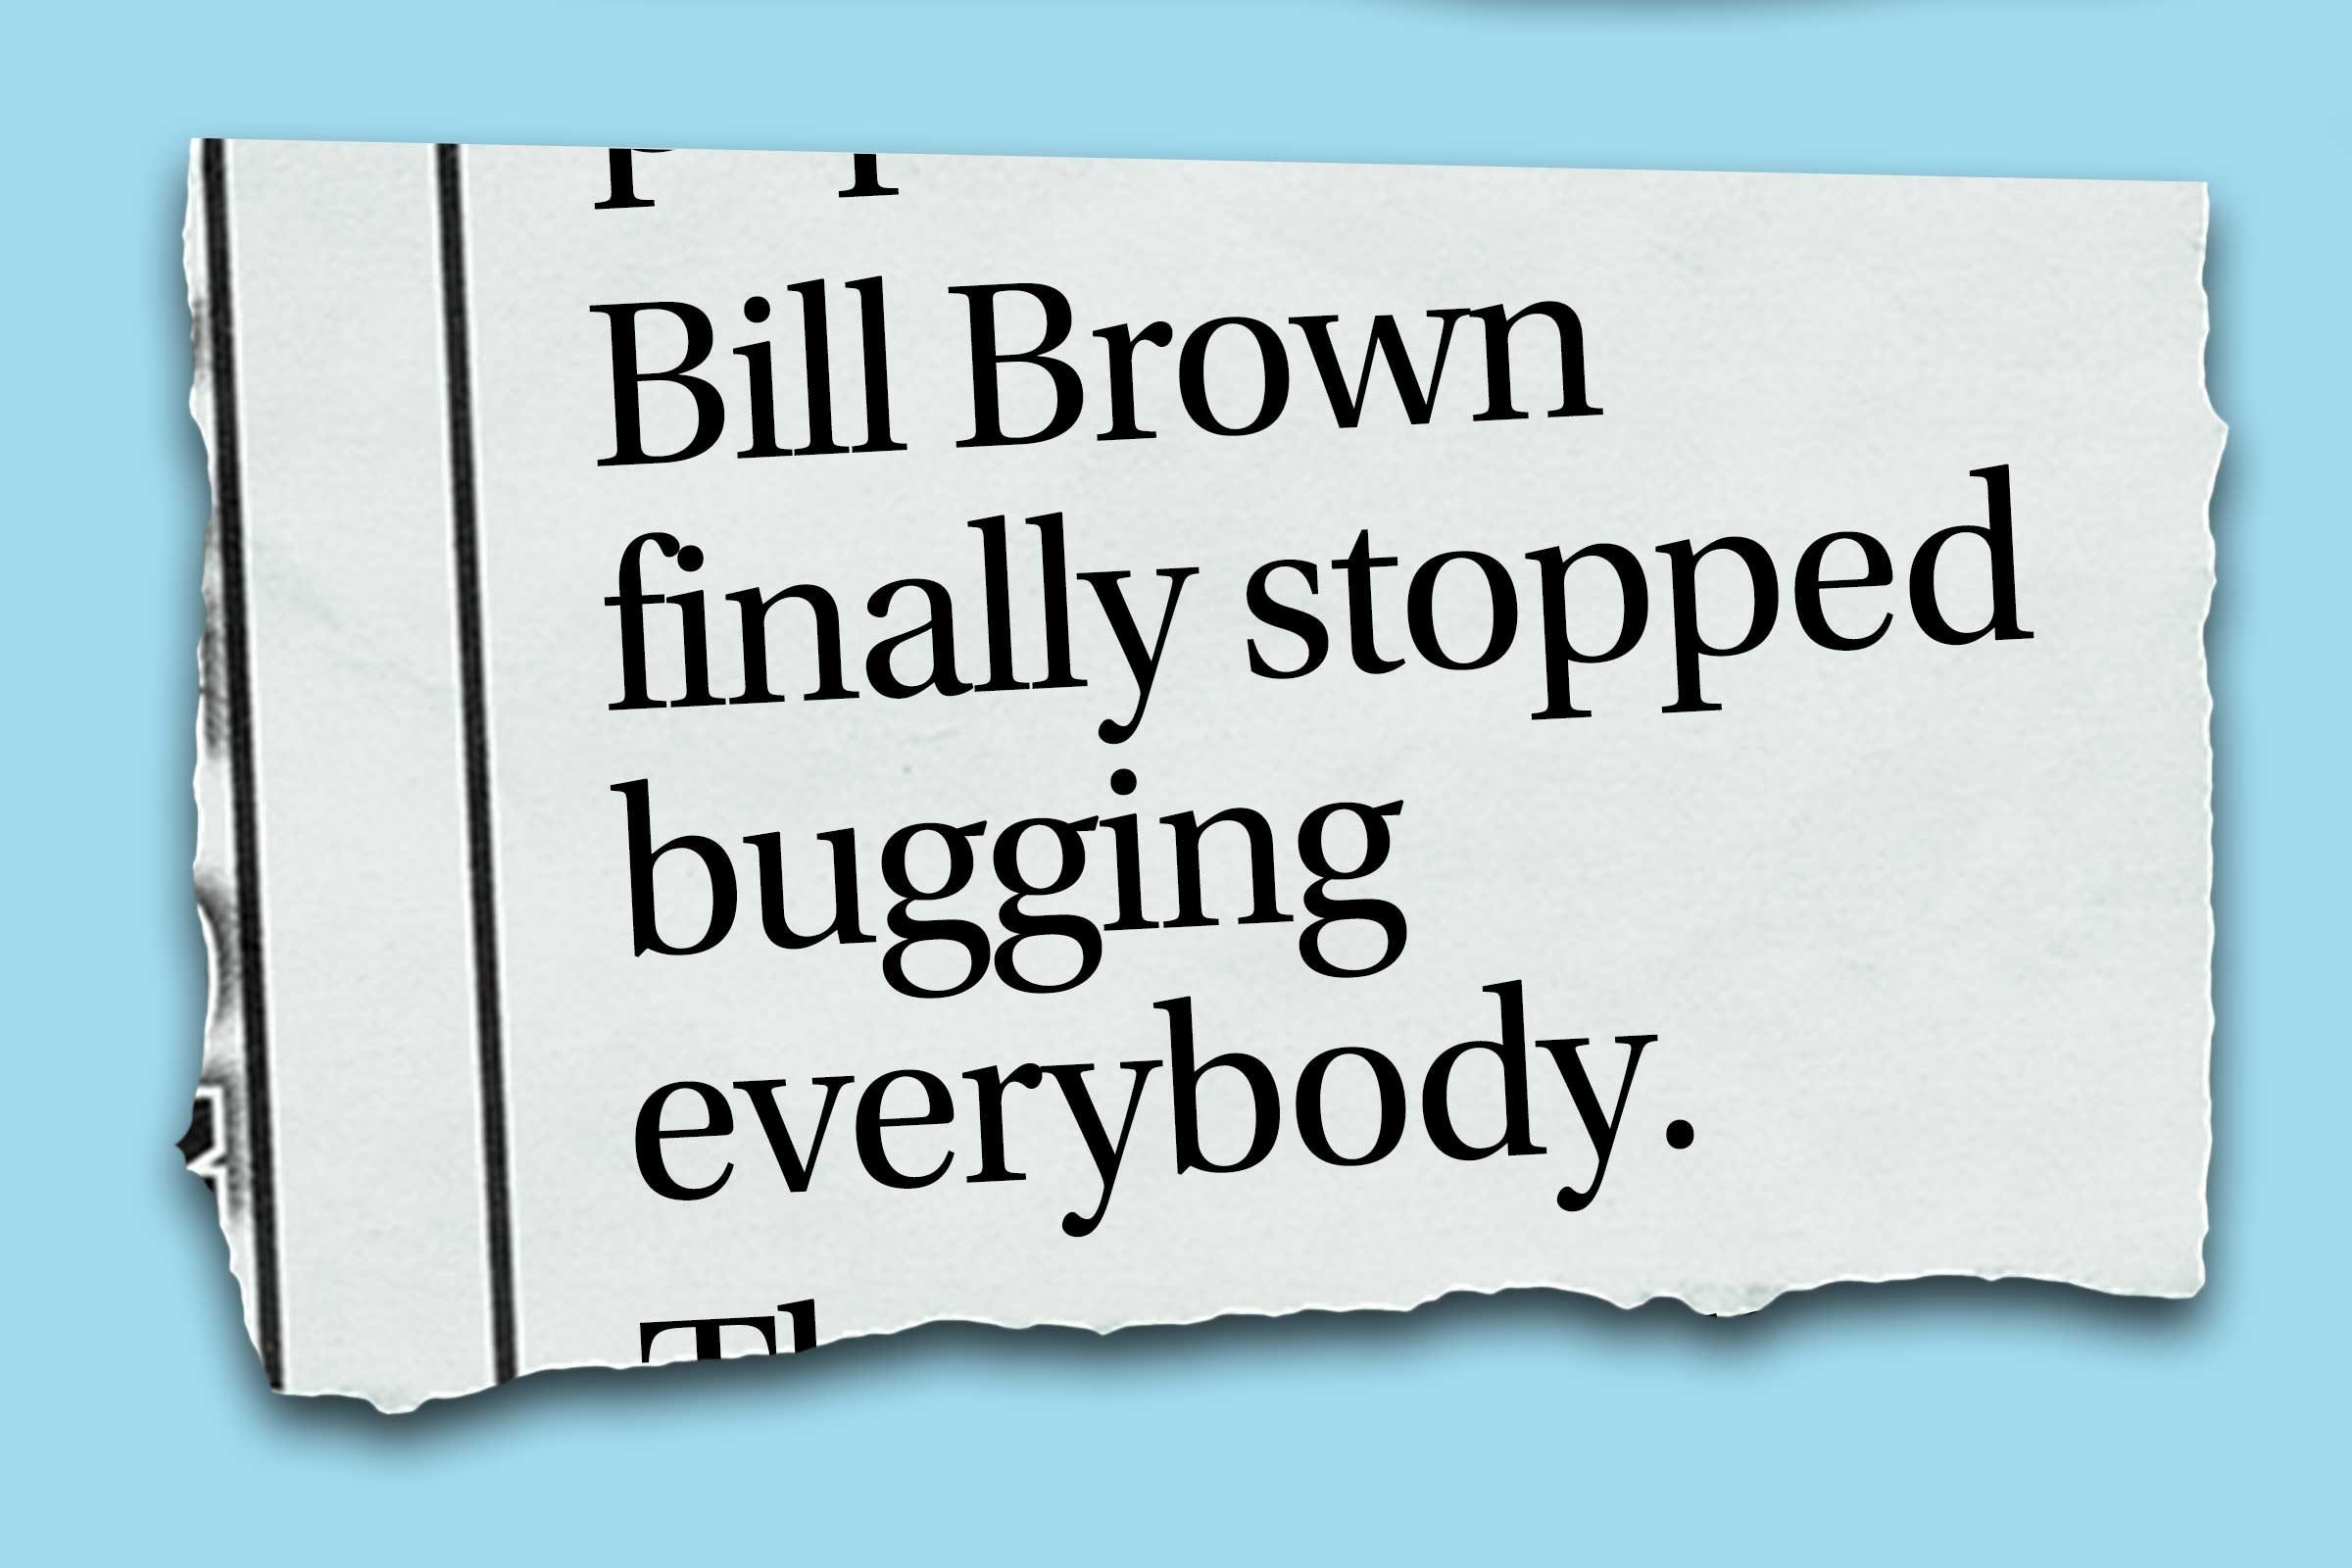 """Funniest obituaries that really exist - """"Bill Brown finally stopped bugging everybody."""""""